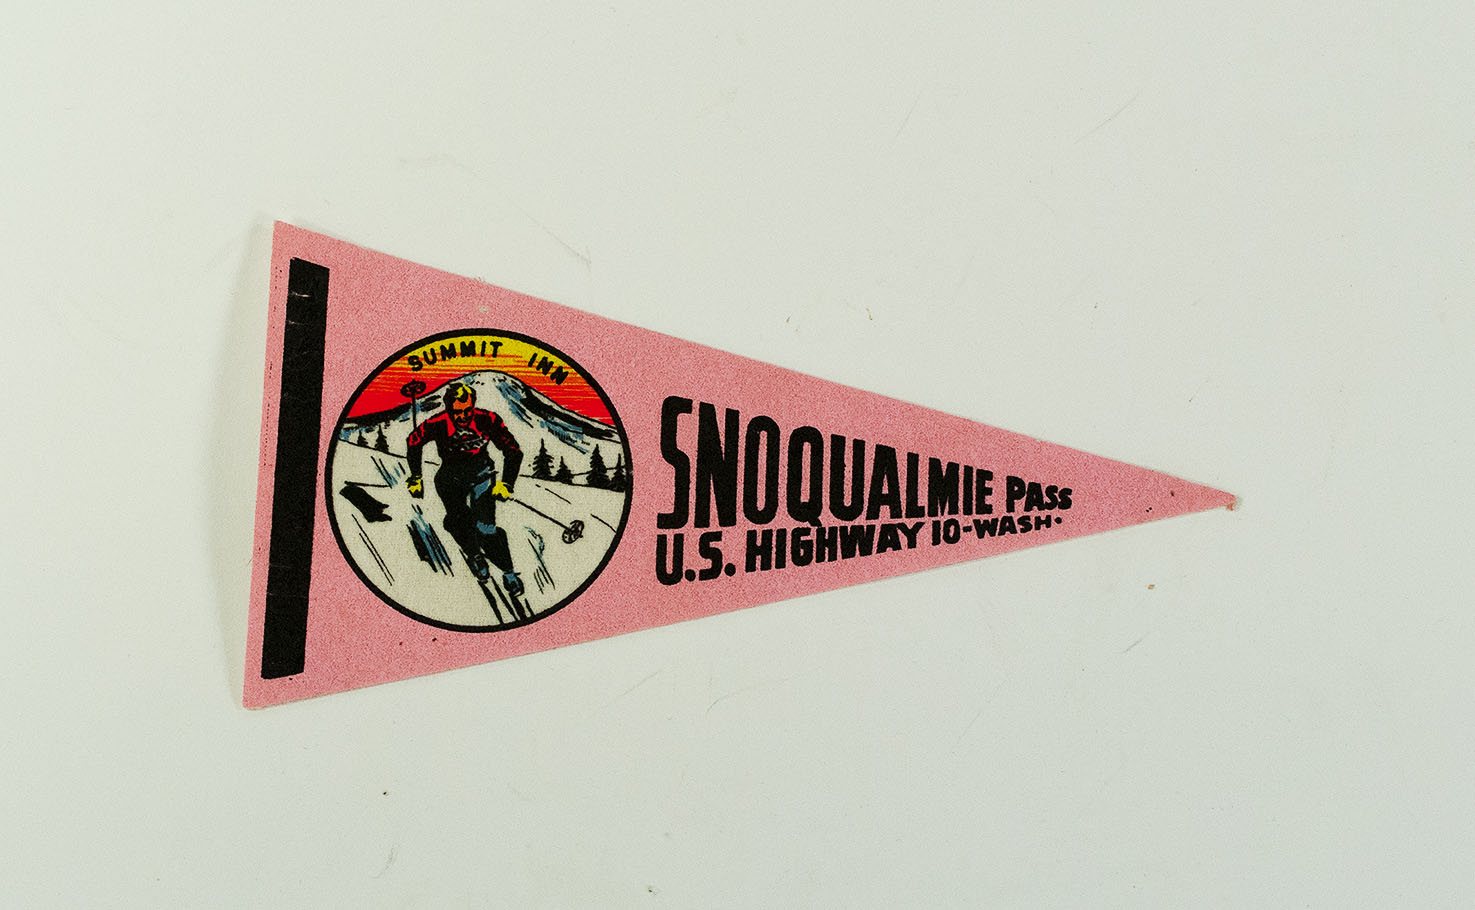 [pennant supporting Summit Inn, Snoqualmie Pass Highway, WA]